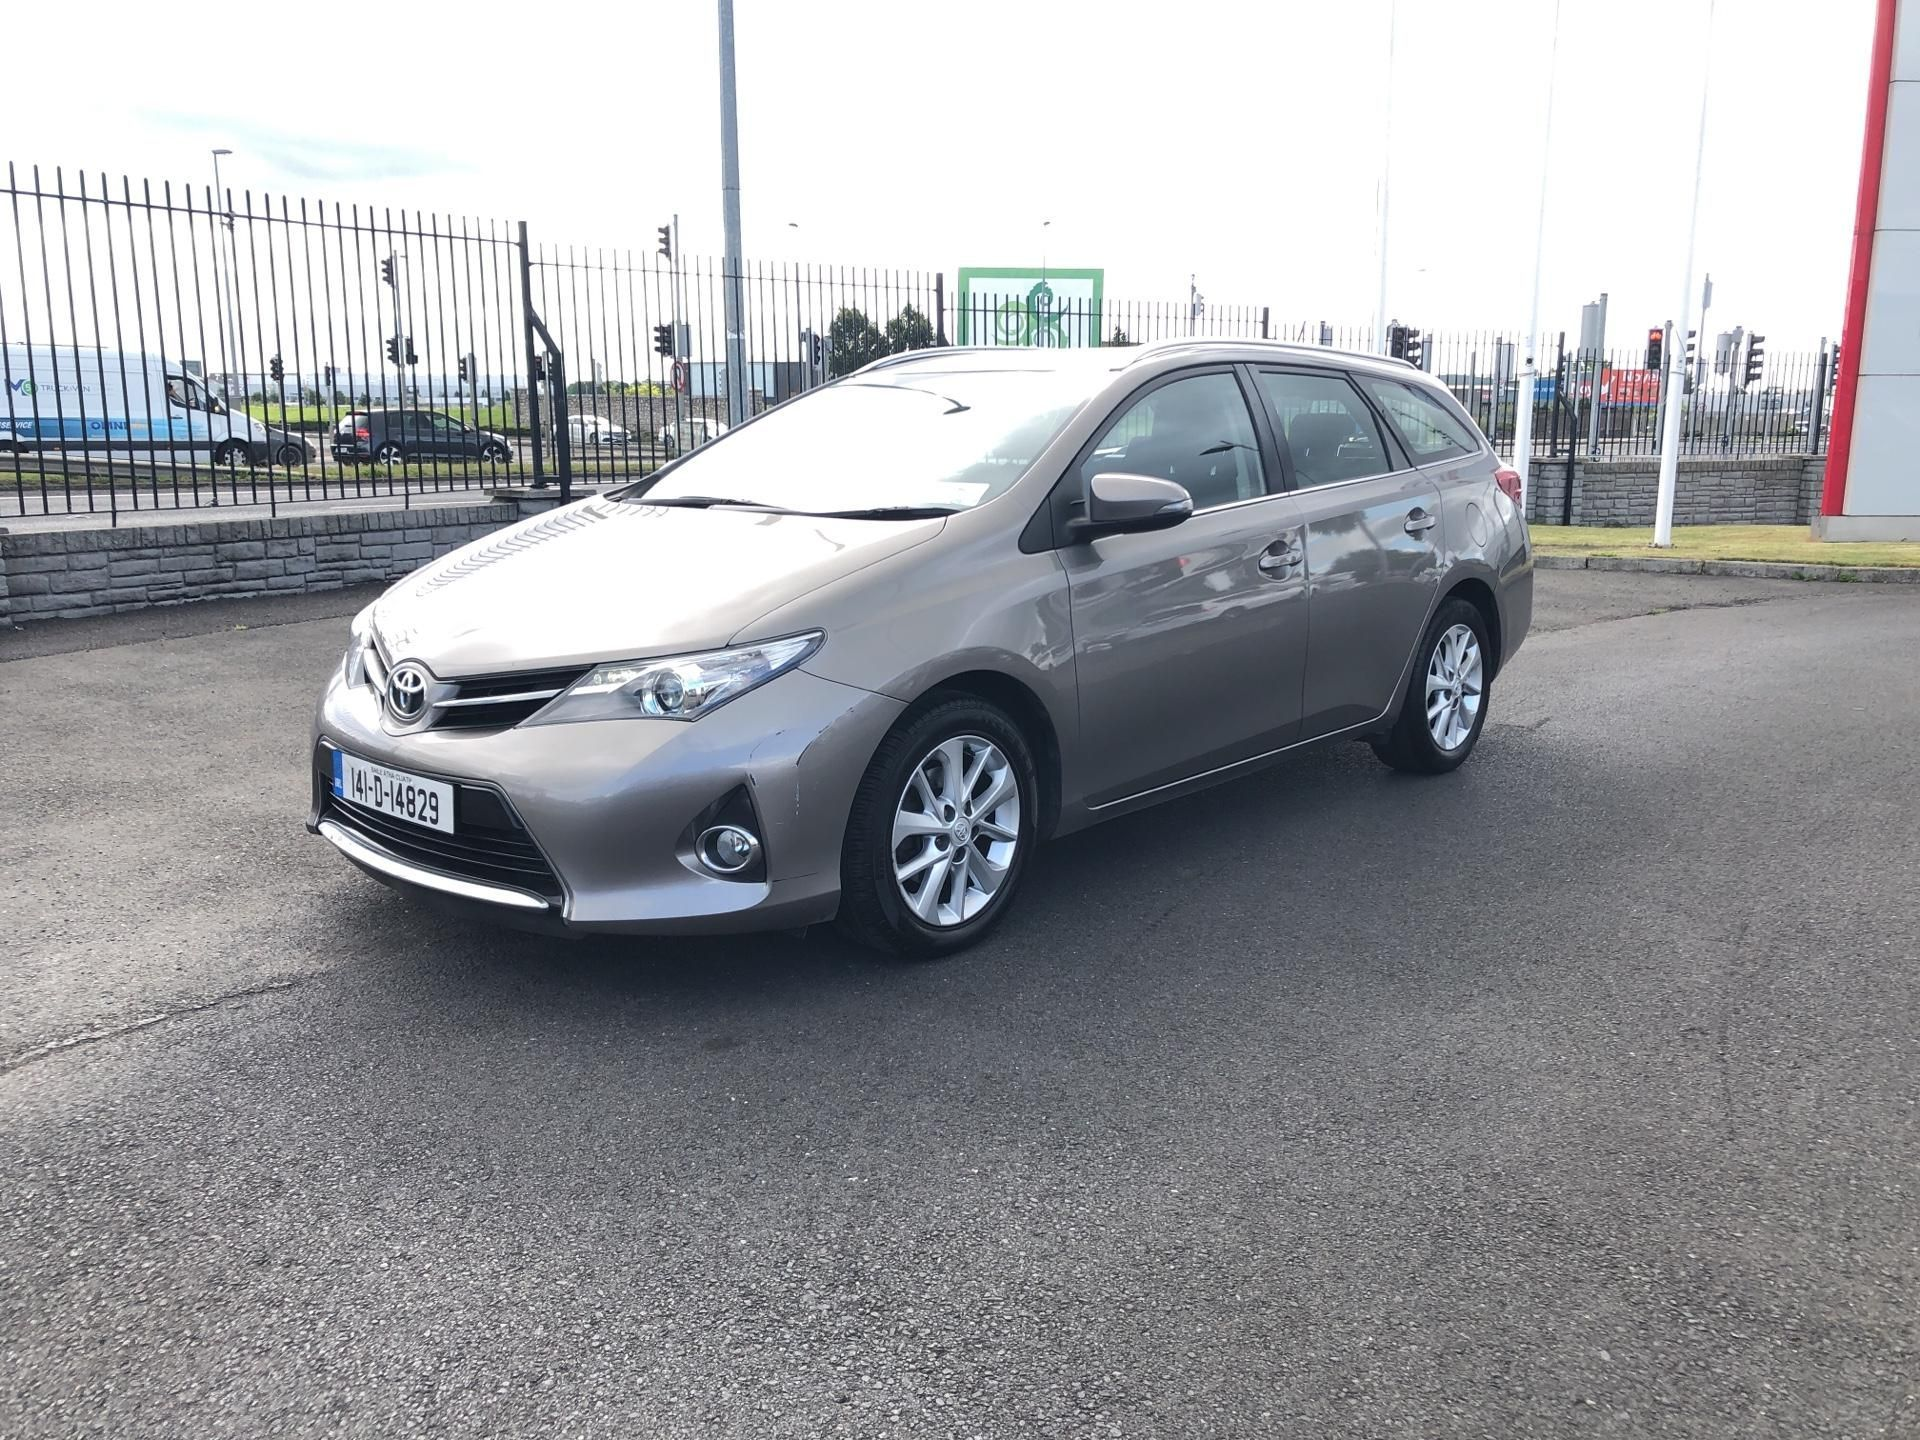 Toyota Auris 1.4D4D LUNA TS Estate